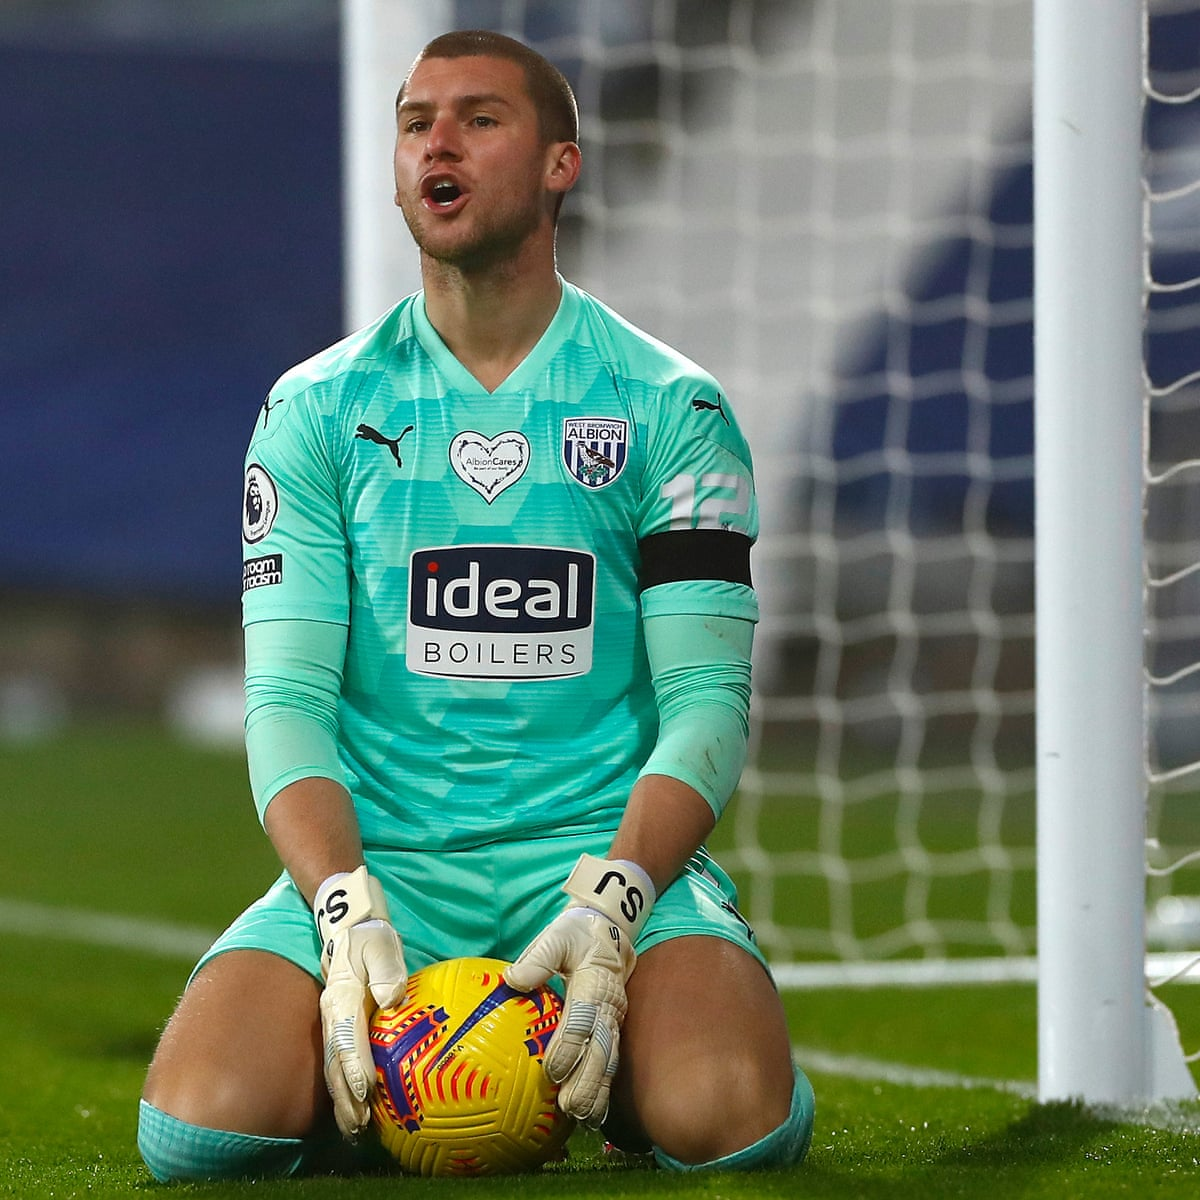 West Brom's Sam Johnstone: 'It hurts when people slag footballers off' |  West Bromwich Albion | The Guardian